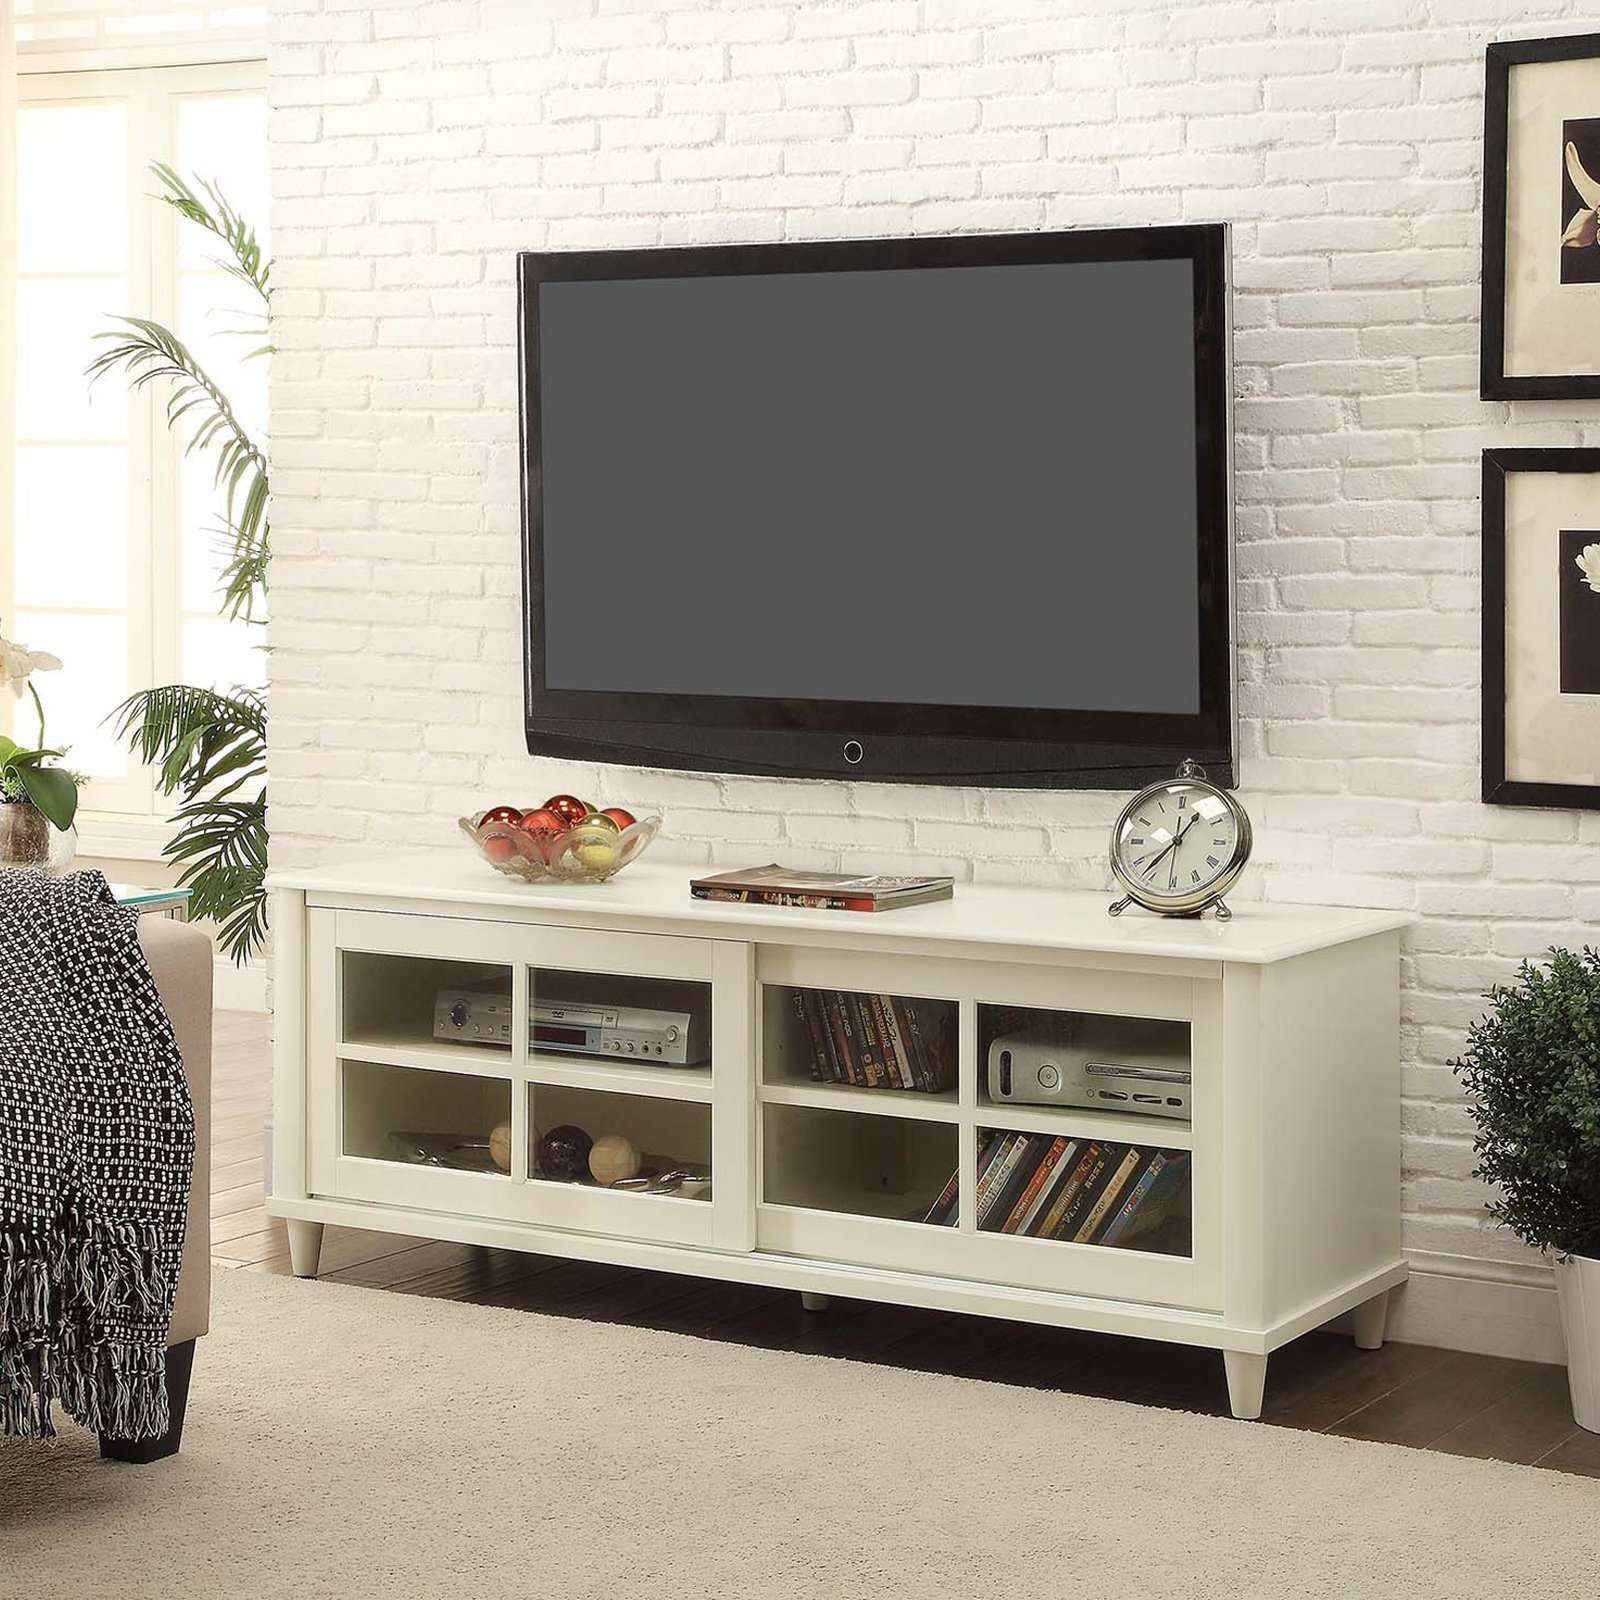 Convenience Concepts French Country Black & Cherry Tv Stand, For Inside Country Tv Stands (View 11 of 15)